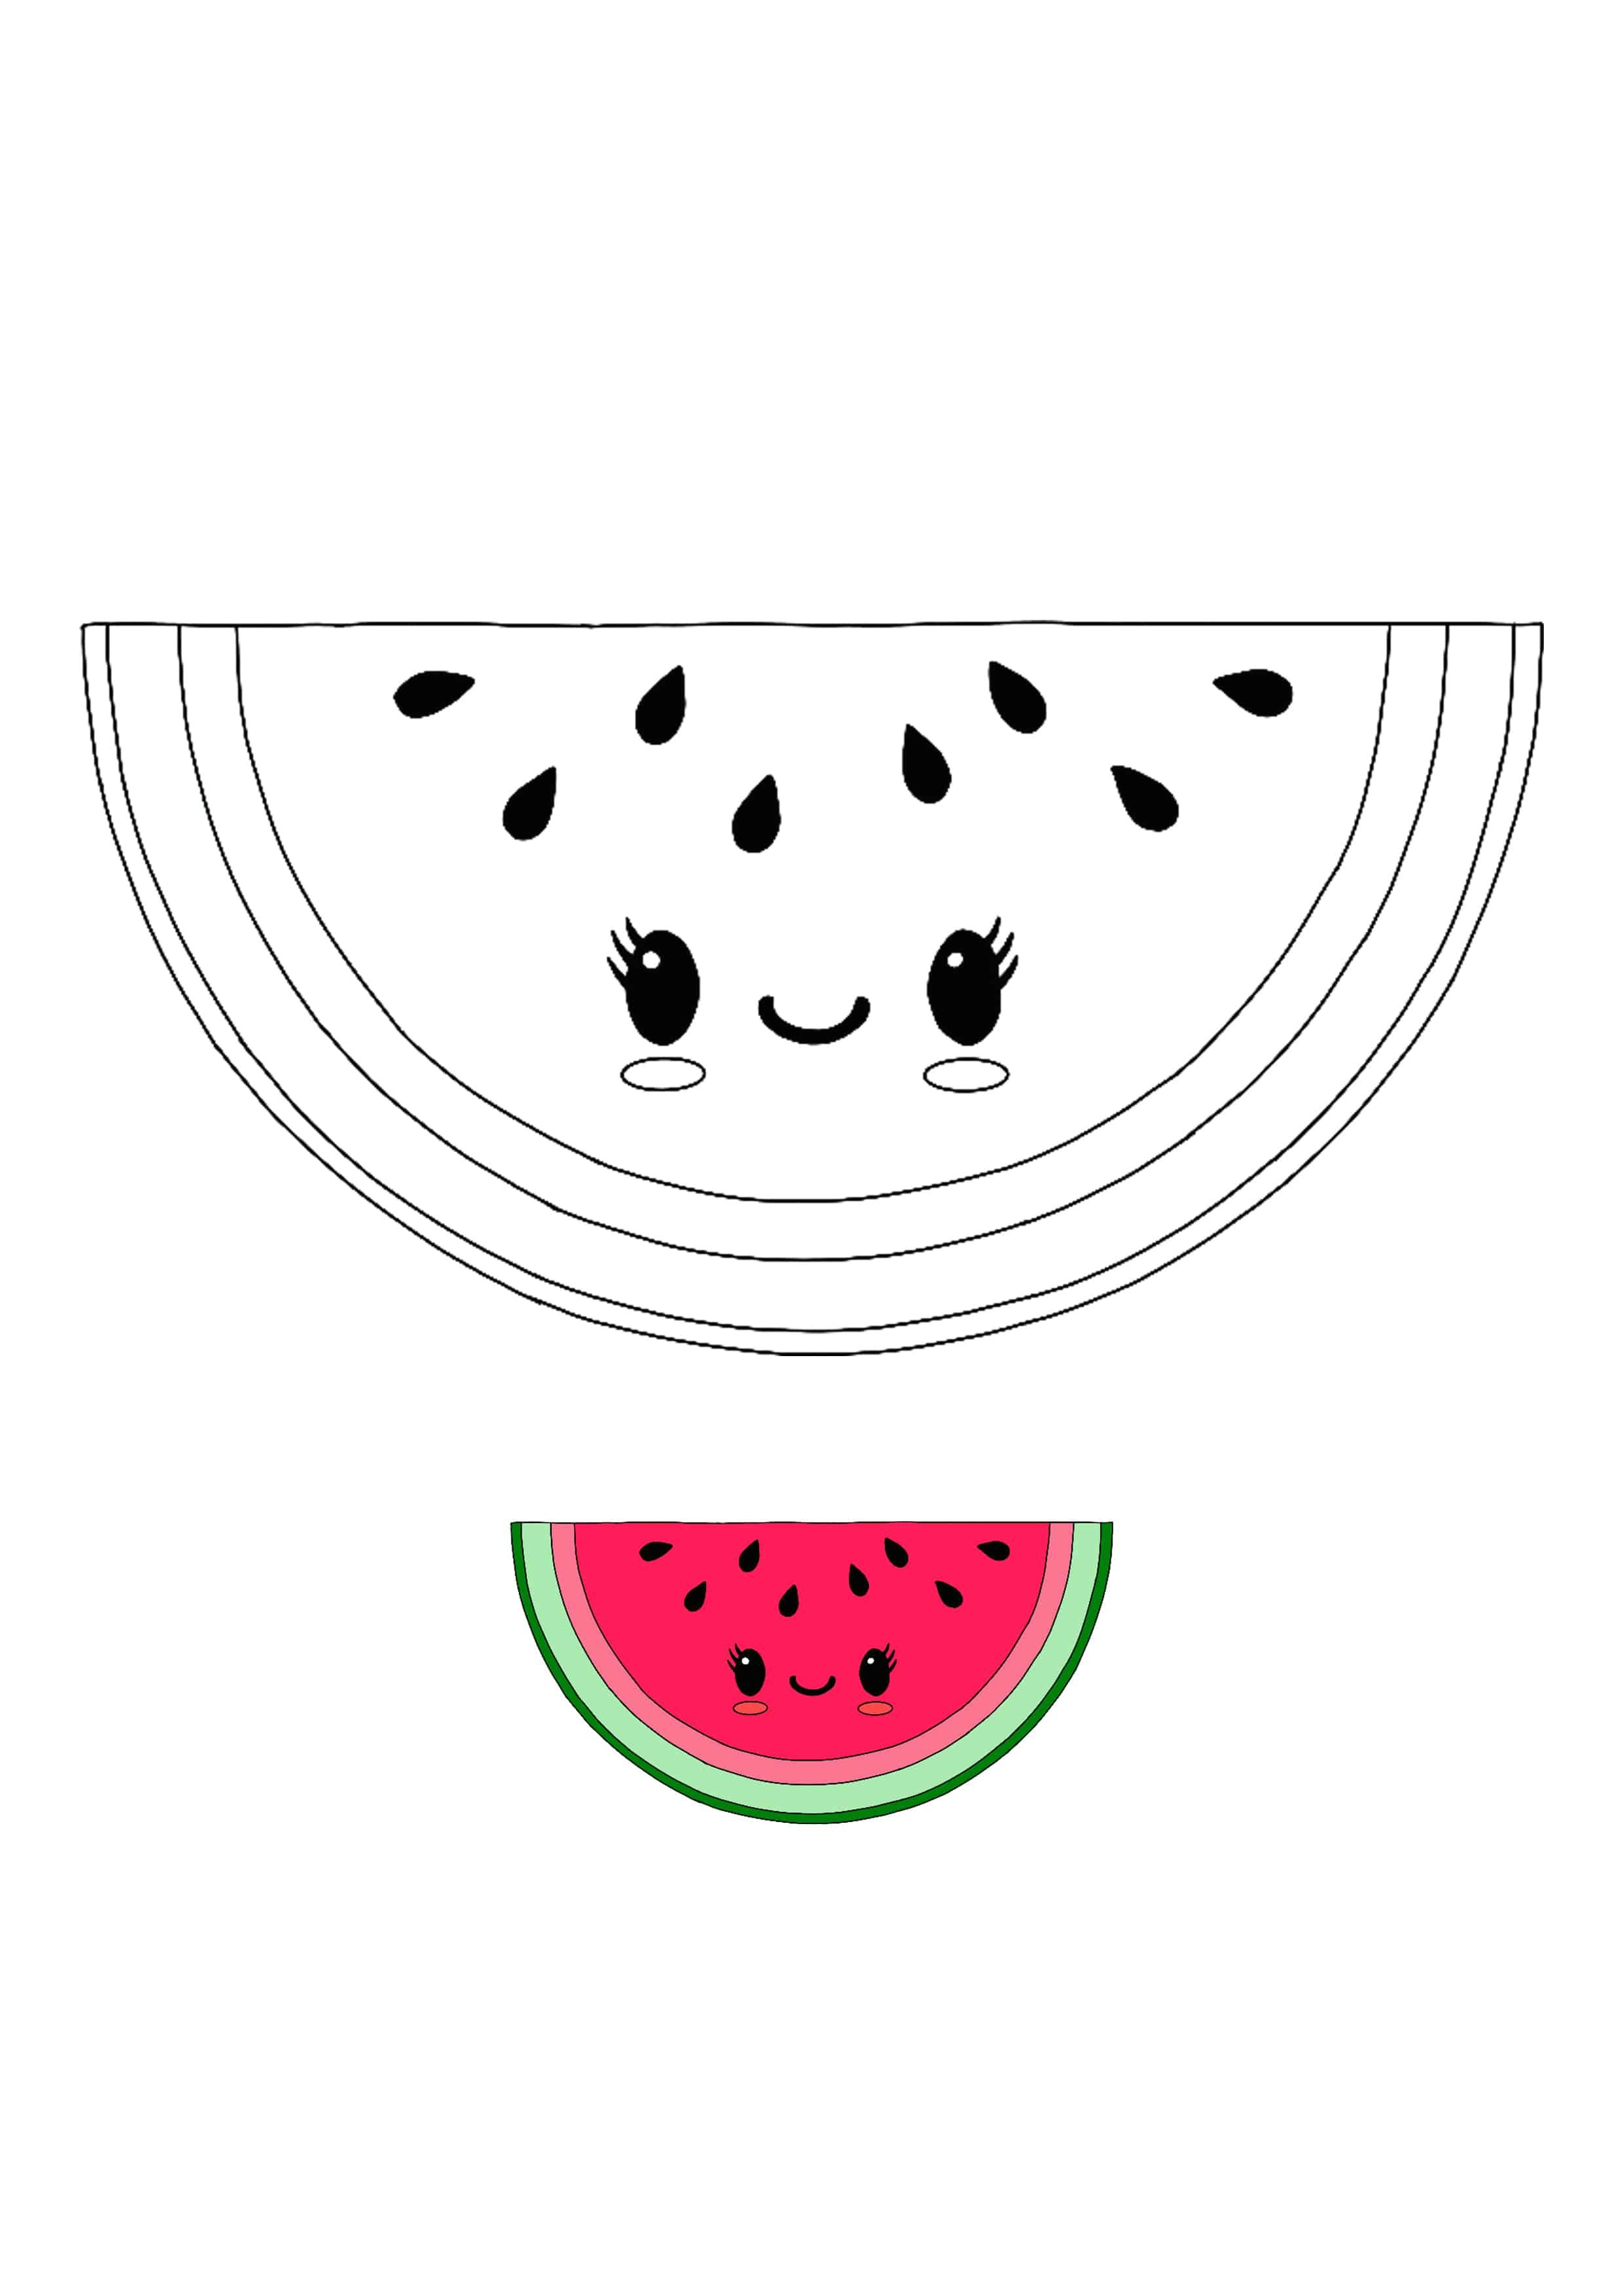 Kawaii Watermelon Coloring Page With Sample Coloring Pages Printables Free Kids Free Printable Coloring Pages